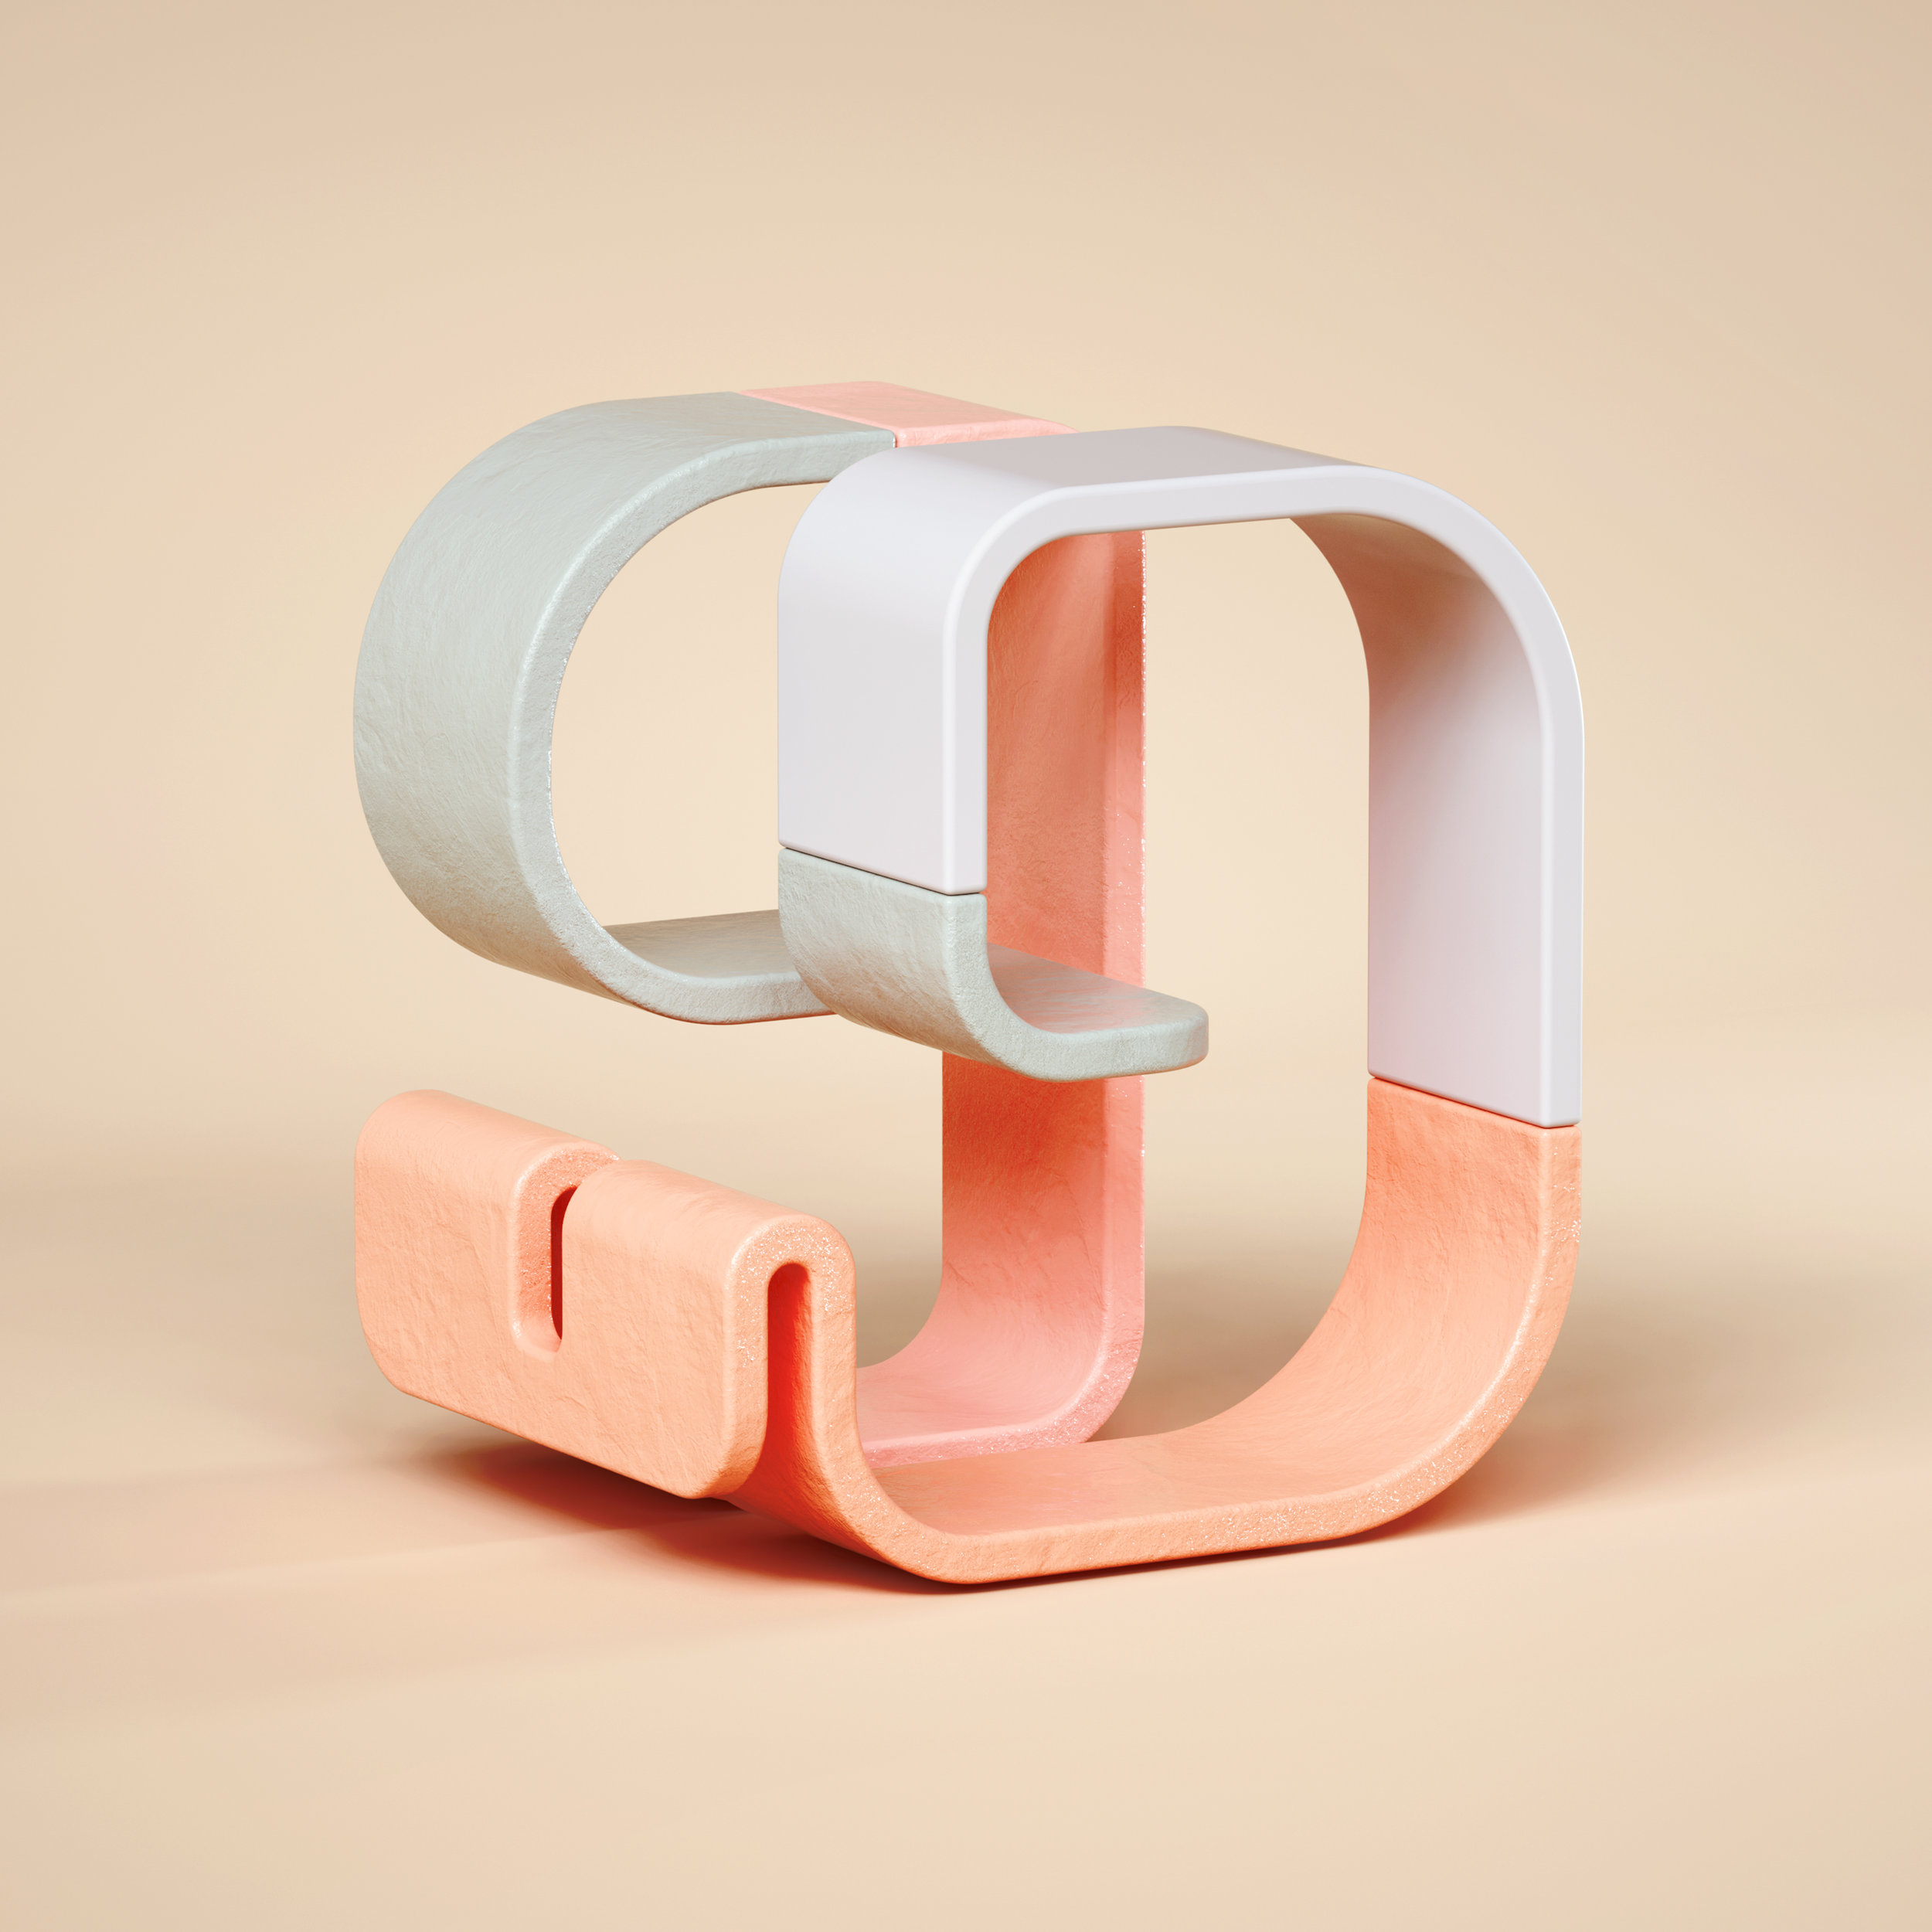 36 Days of Type 2019 - 3D Typeform number 9 visual.